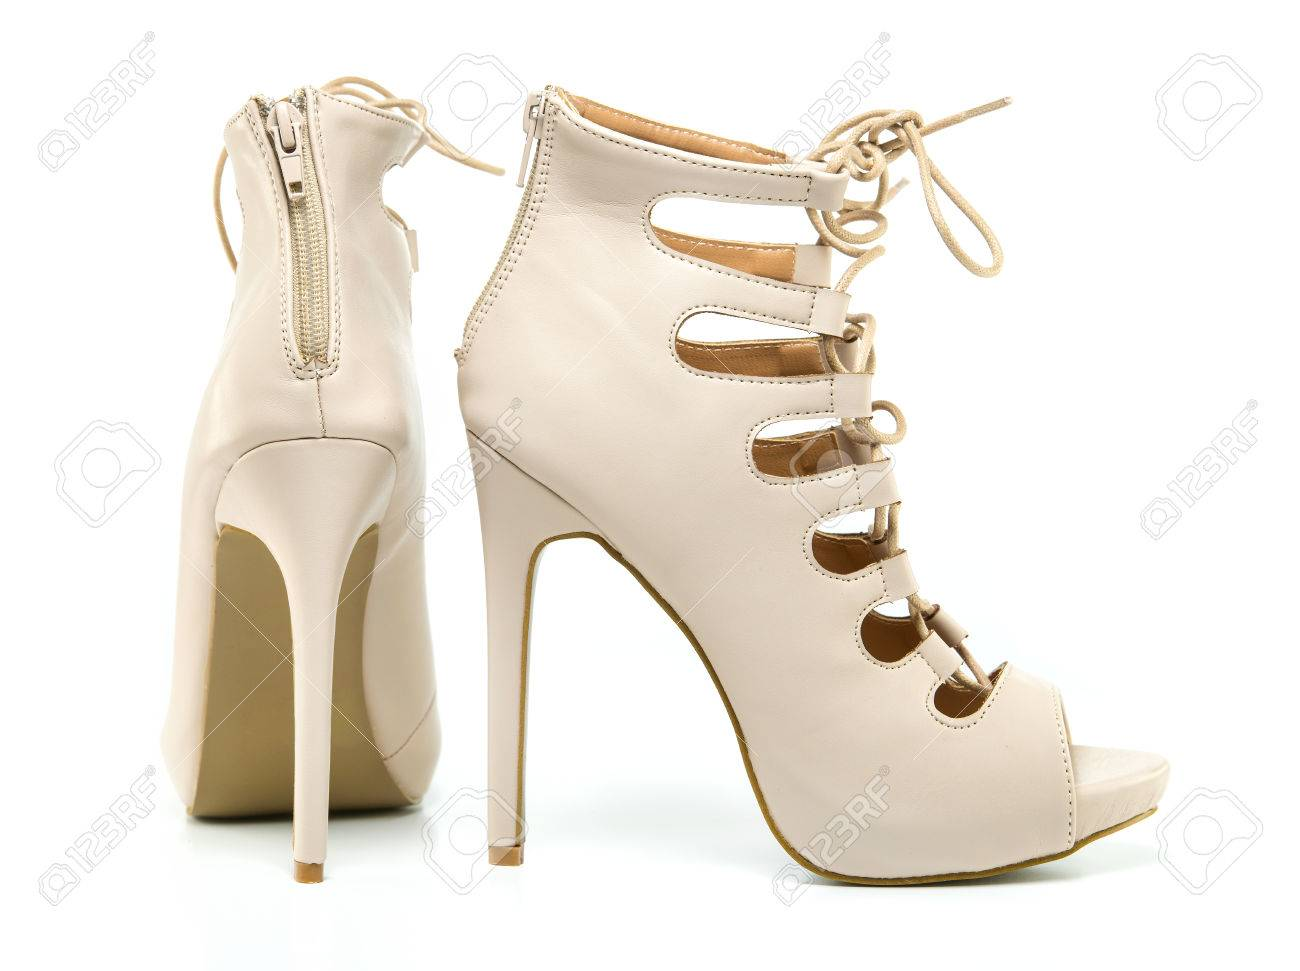 ce332eb34fc fashionable stiletto high heels ankle boots in nude colour with laces